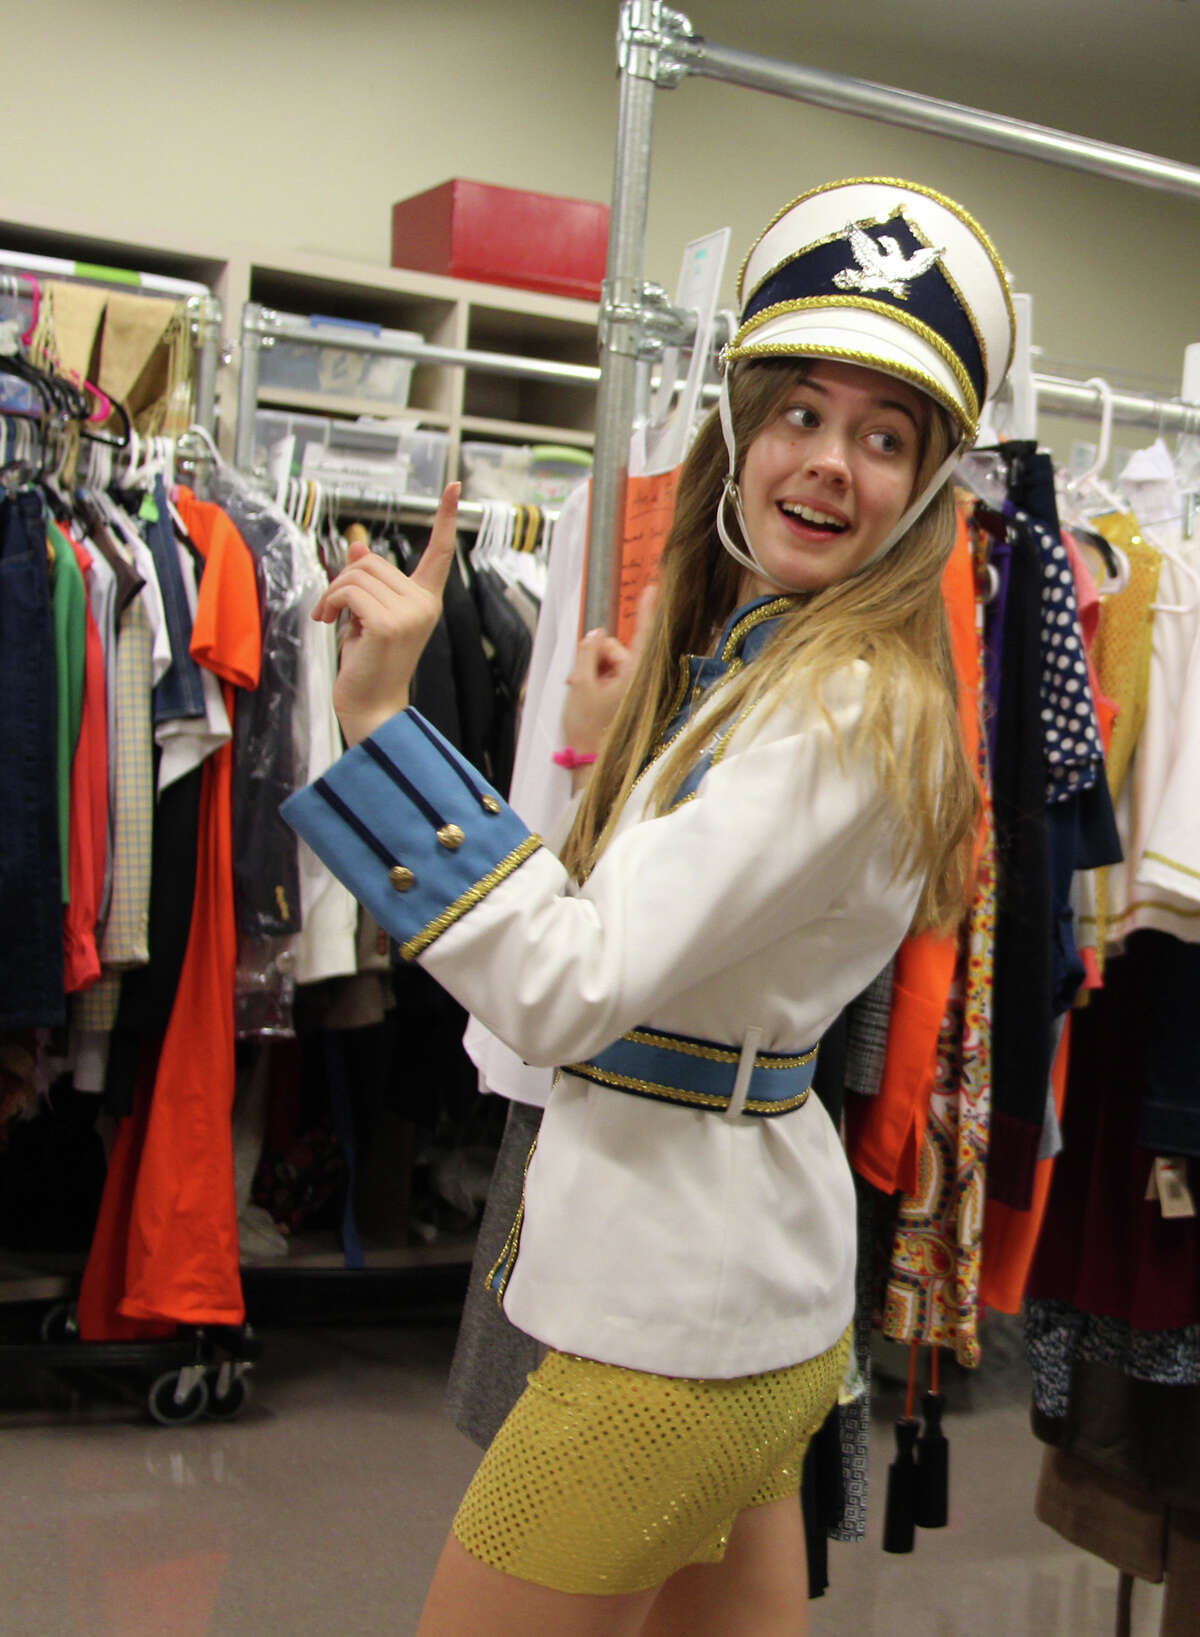 Senior Mallory Bechtel, who plays the lead role of Elle in The John Cooper School production of